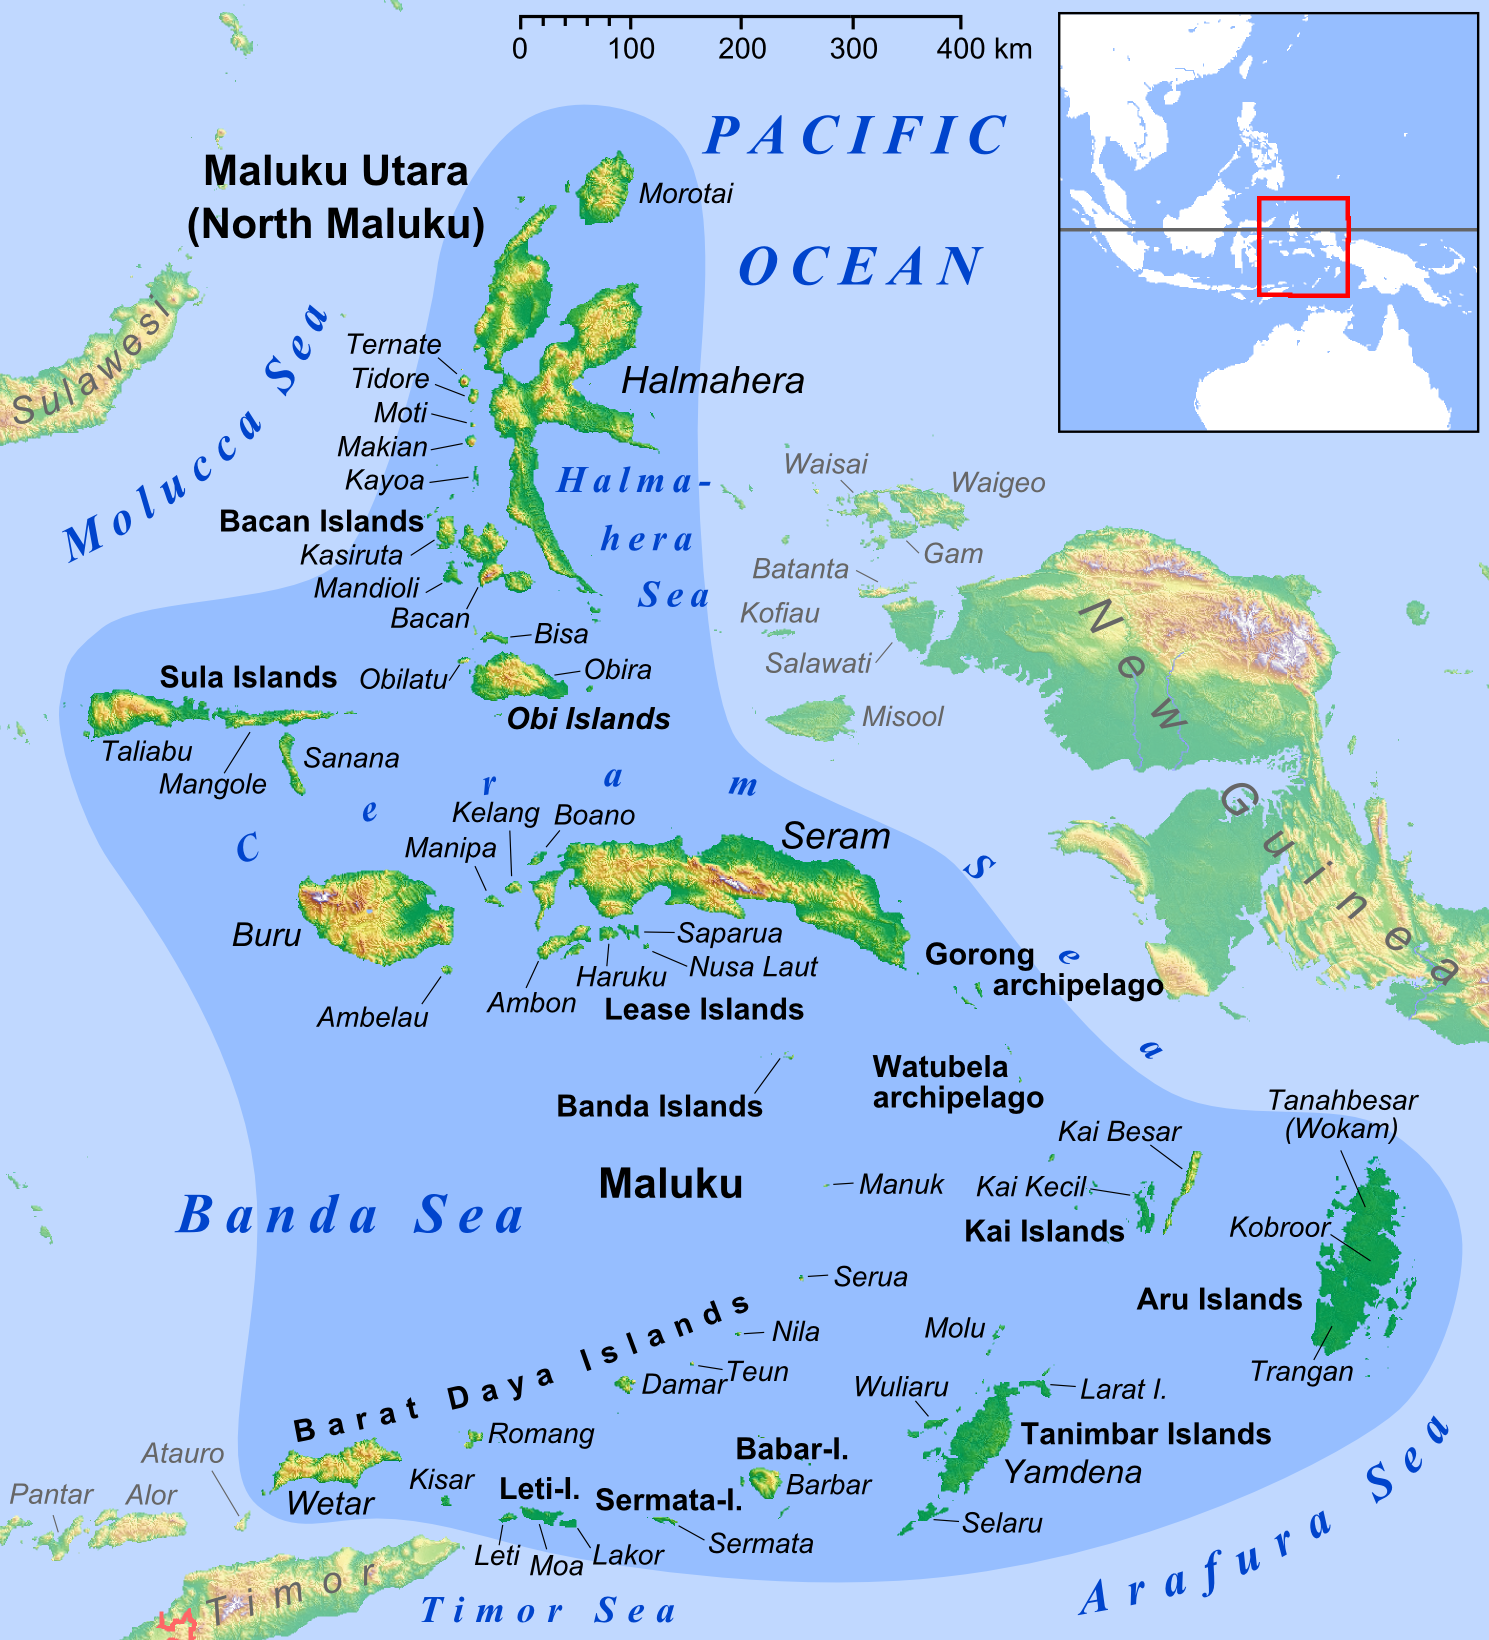 https://upload.wikimedia.org/wikipedia/commons/f/f5/Maluku_Islands_en.png